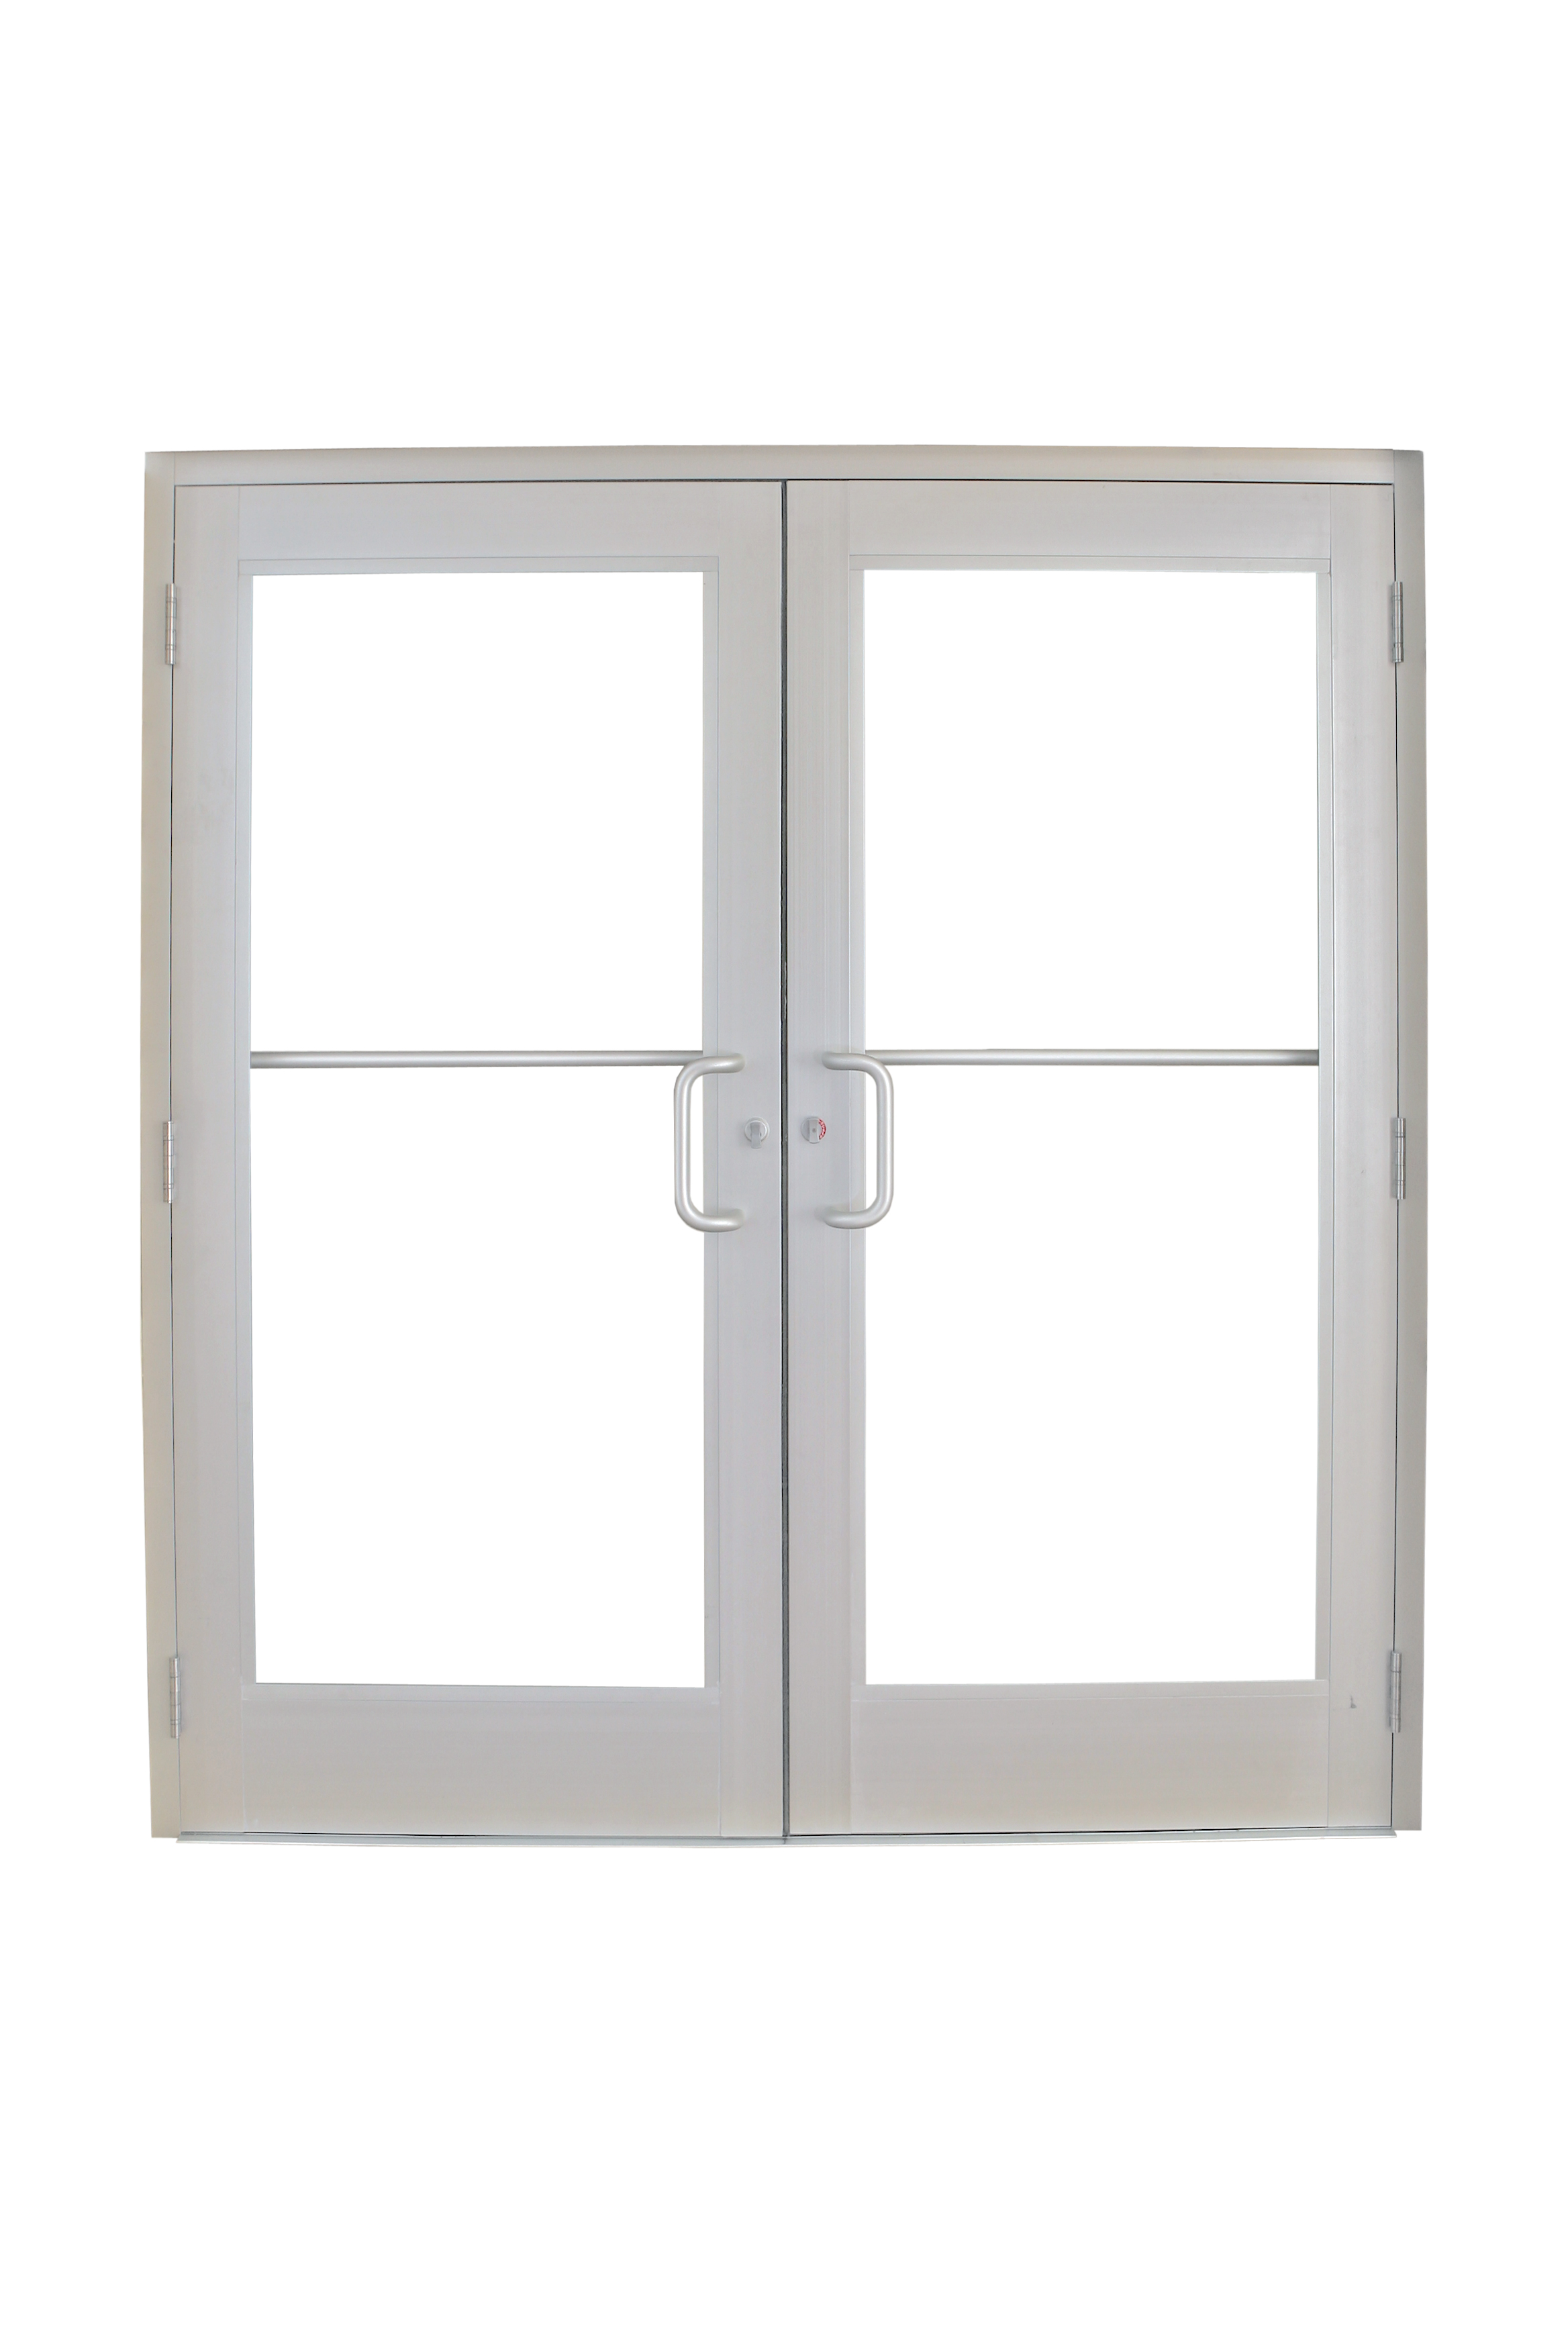 Pics for commercial glass double doors for Double glass doors